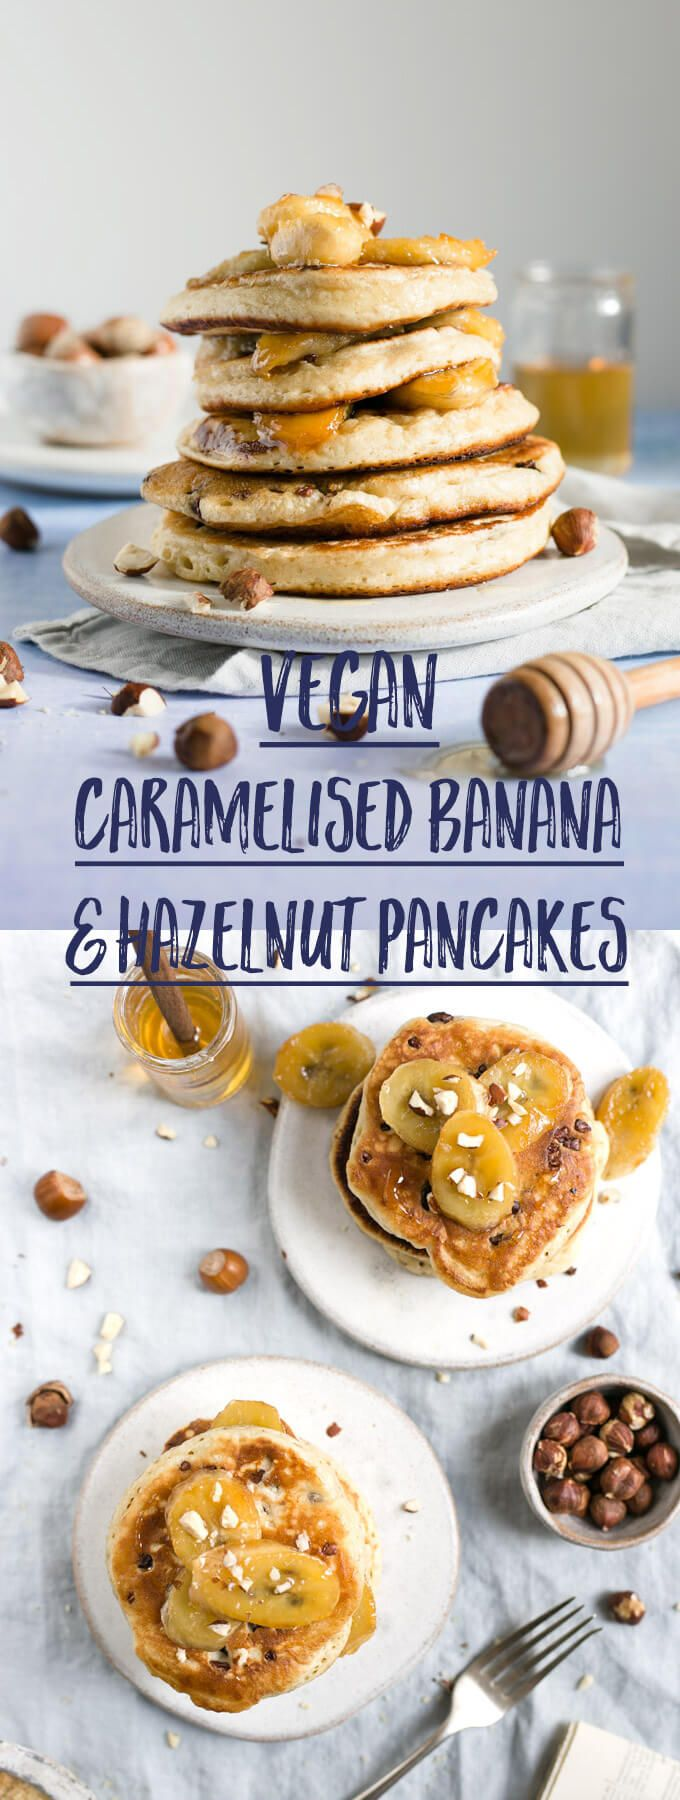 Super soft and fluffy hazelnut pancakes with caramelised bananas #vegan #pancakes #dairyfree | via @annabanana.co